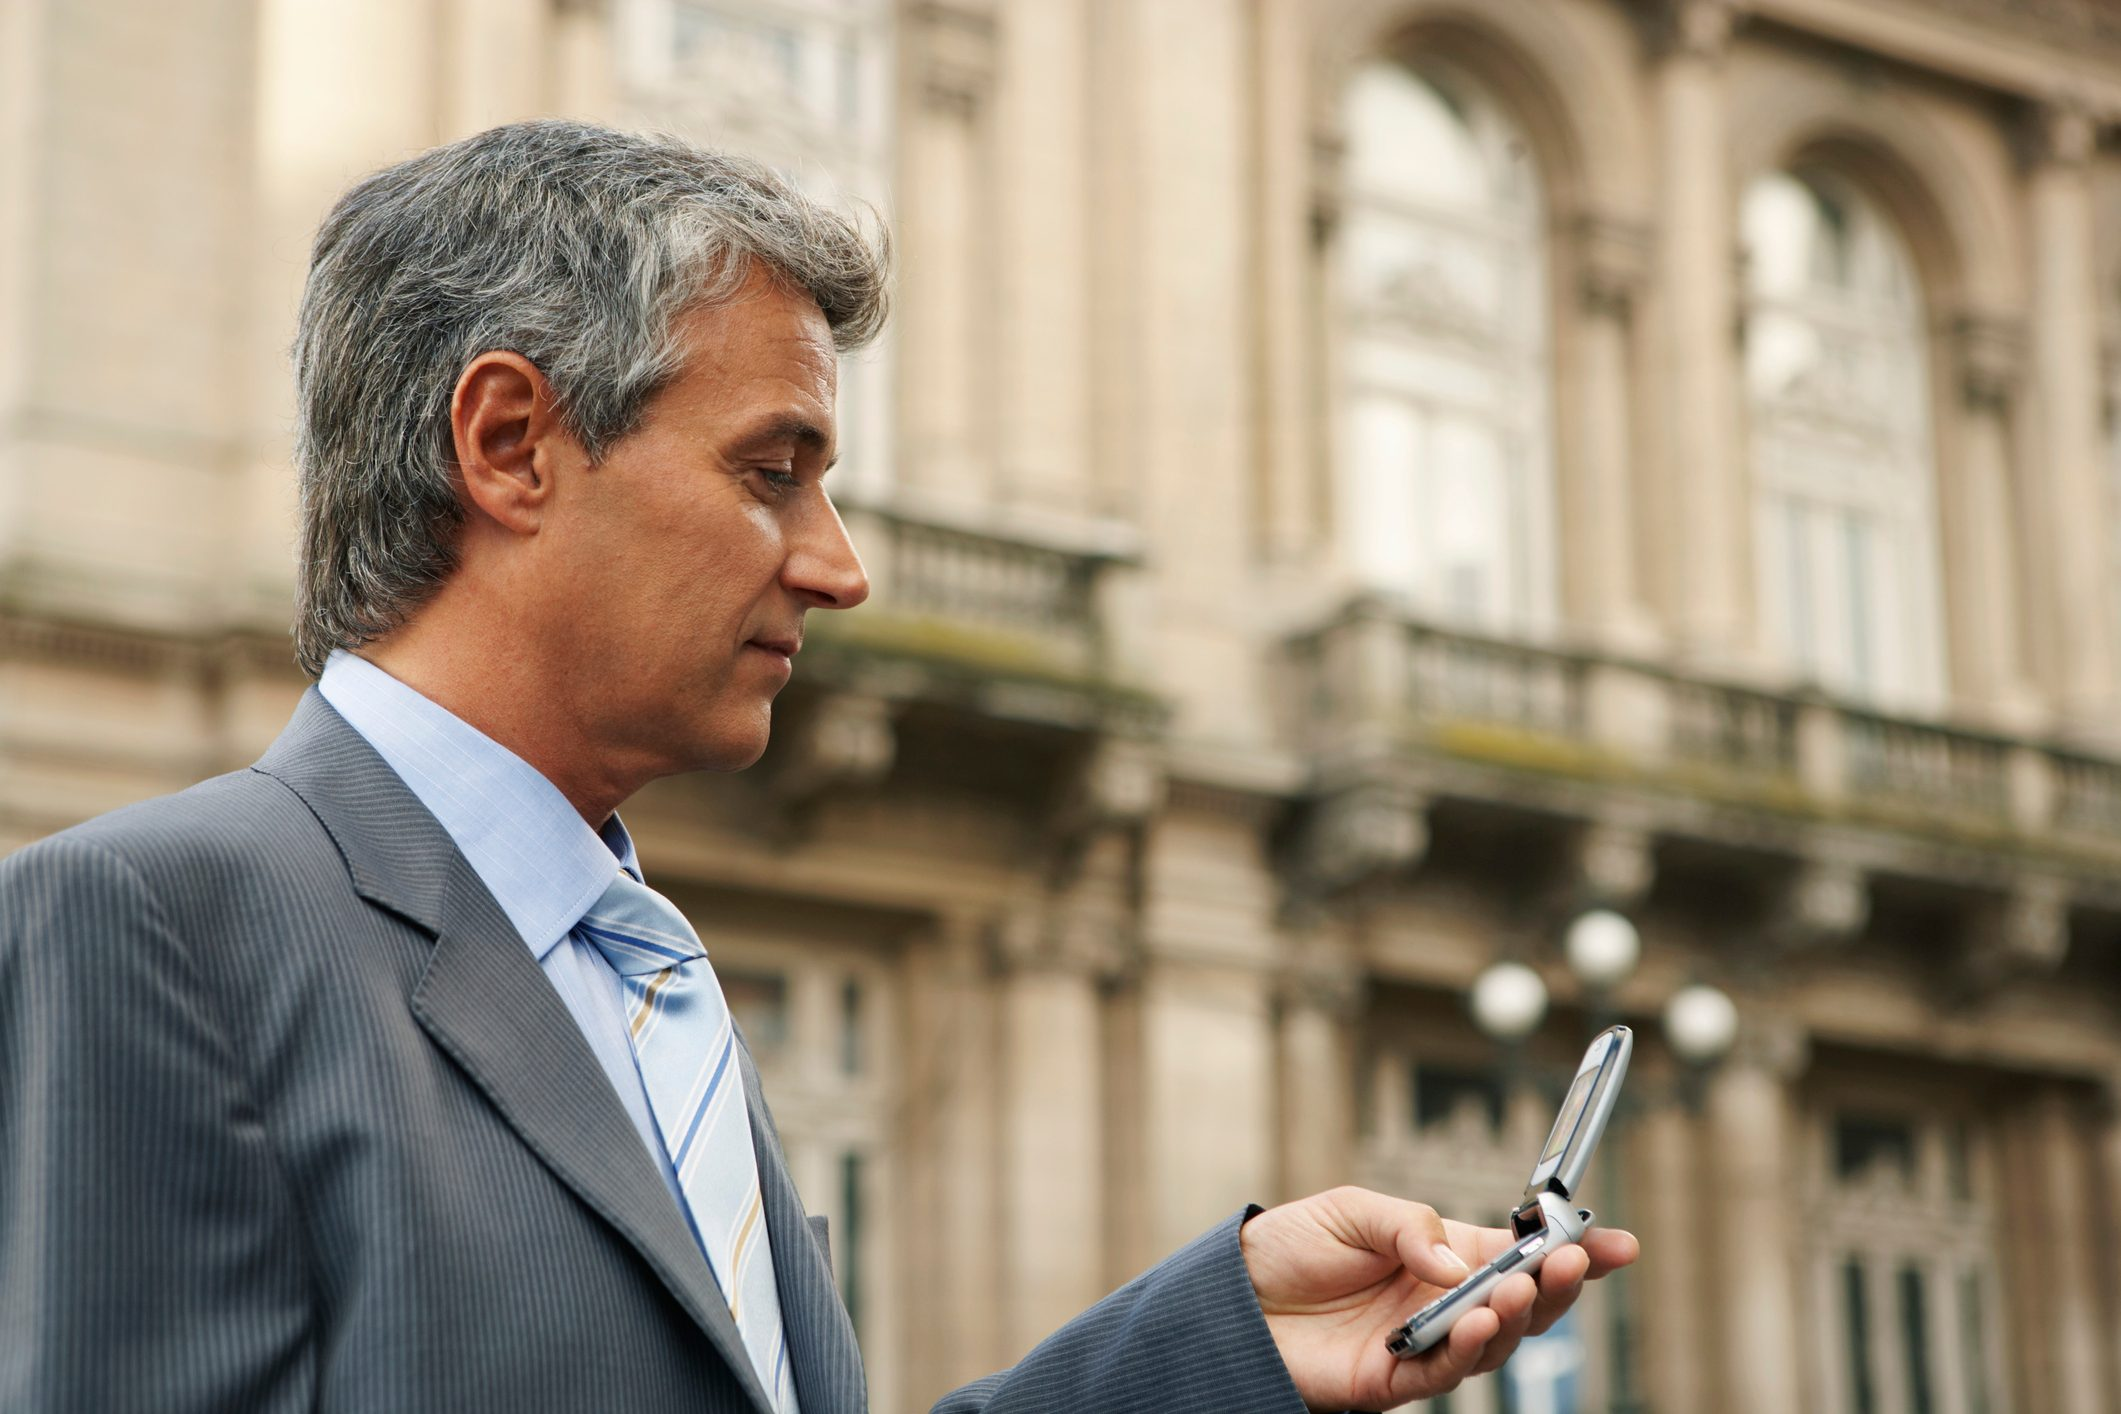 Mature businessman using mobile phone, close up, side view